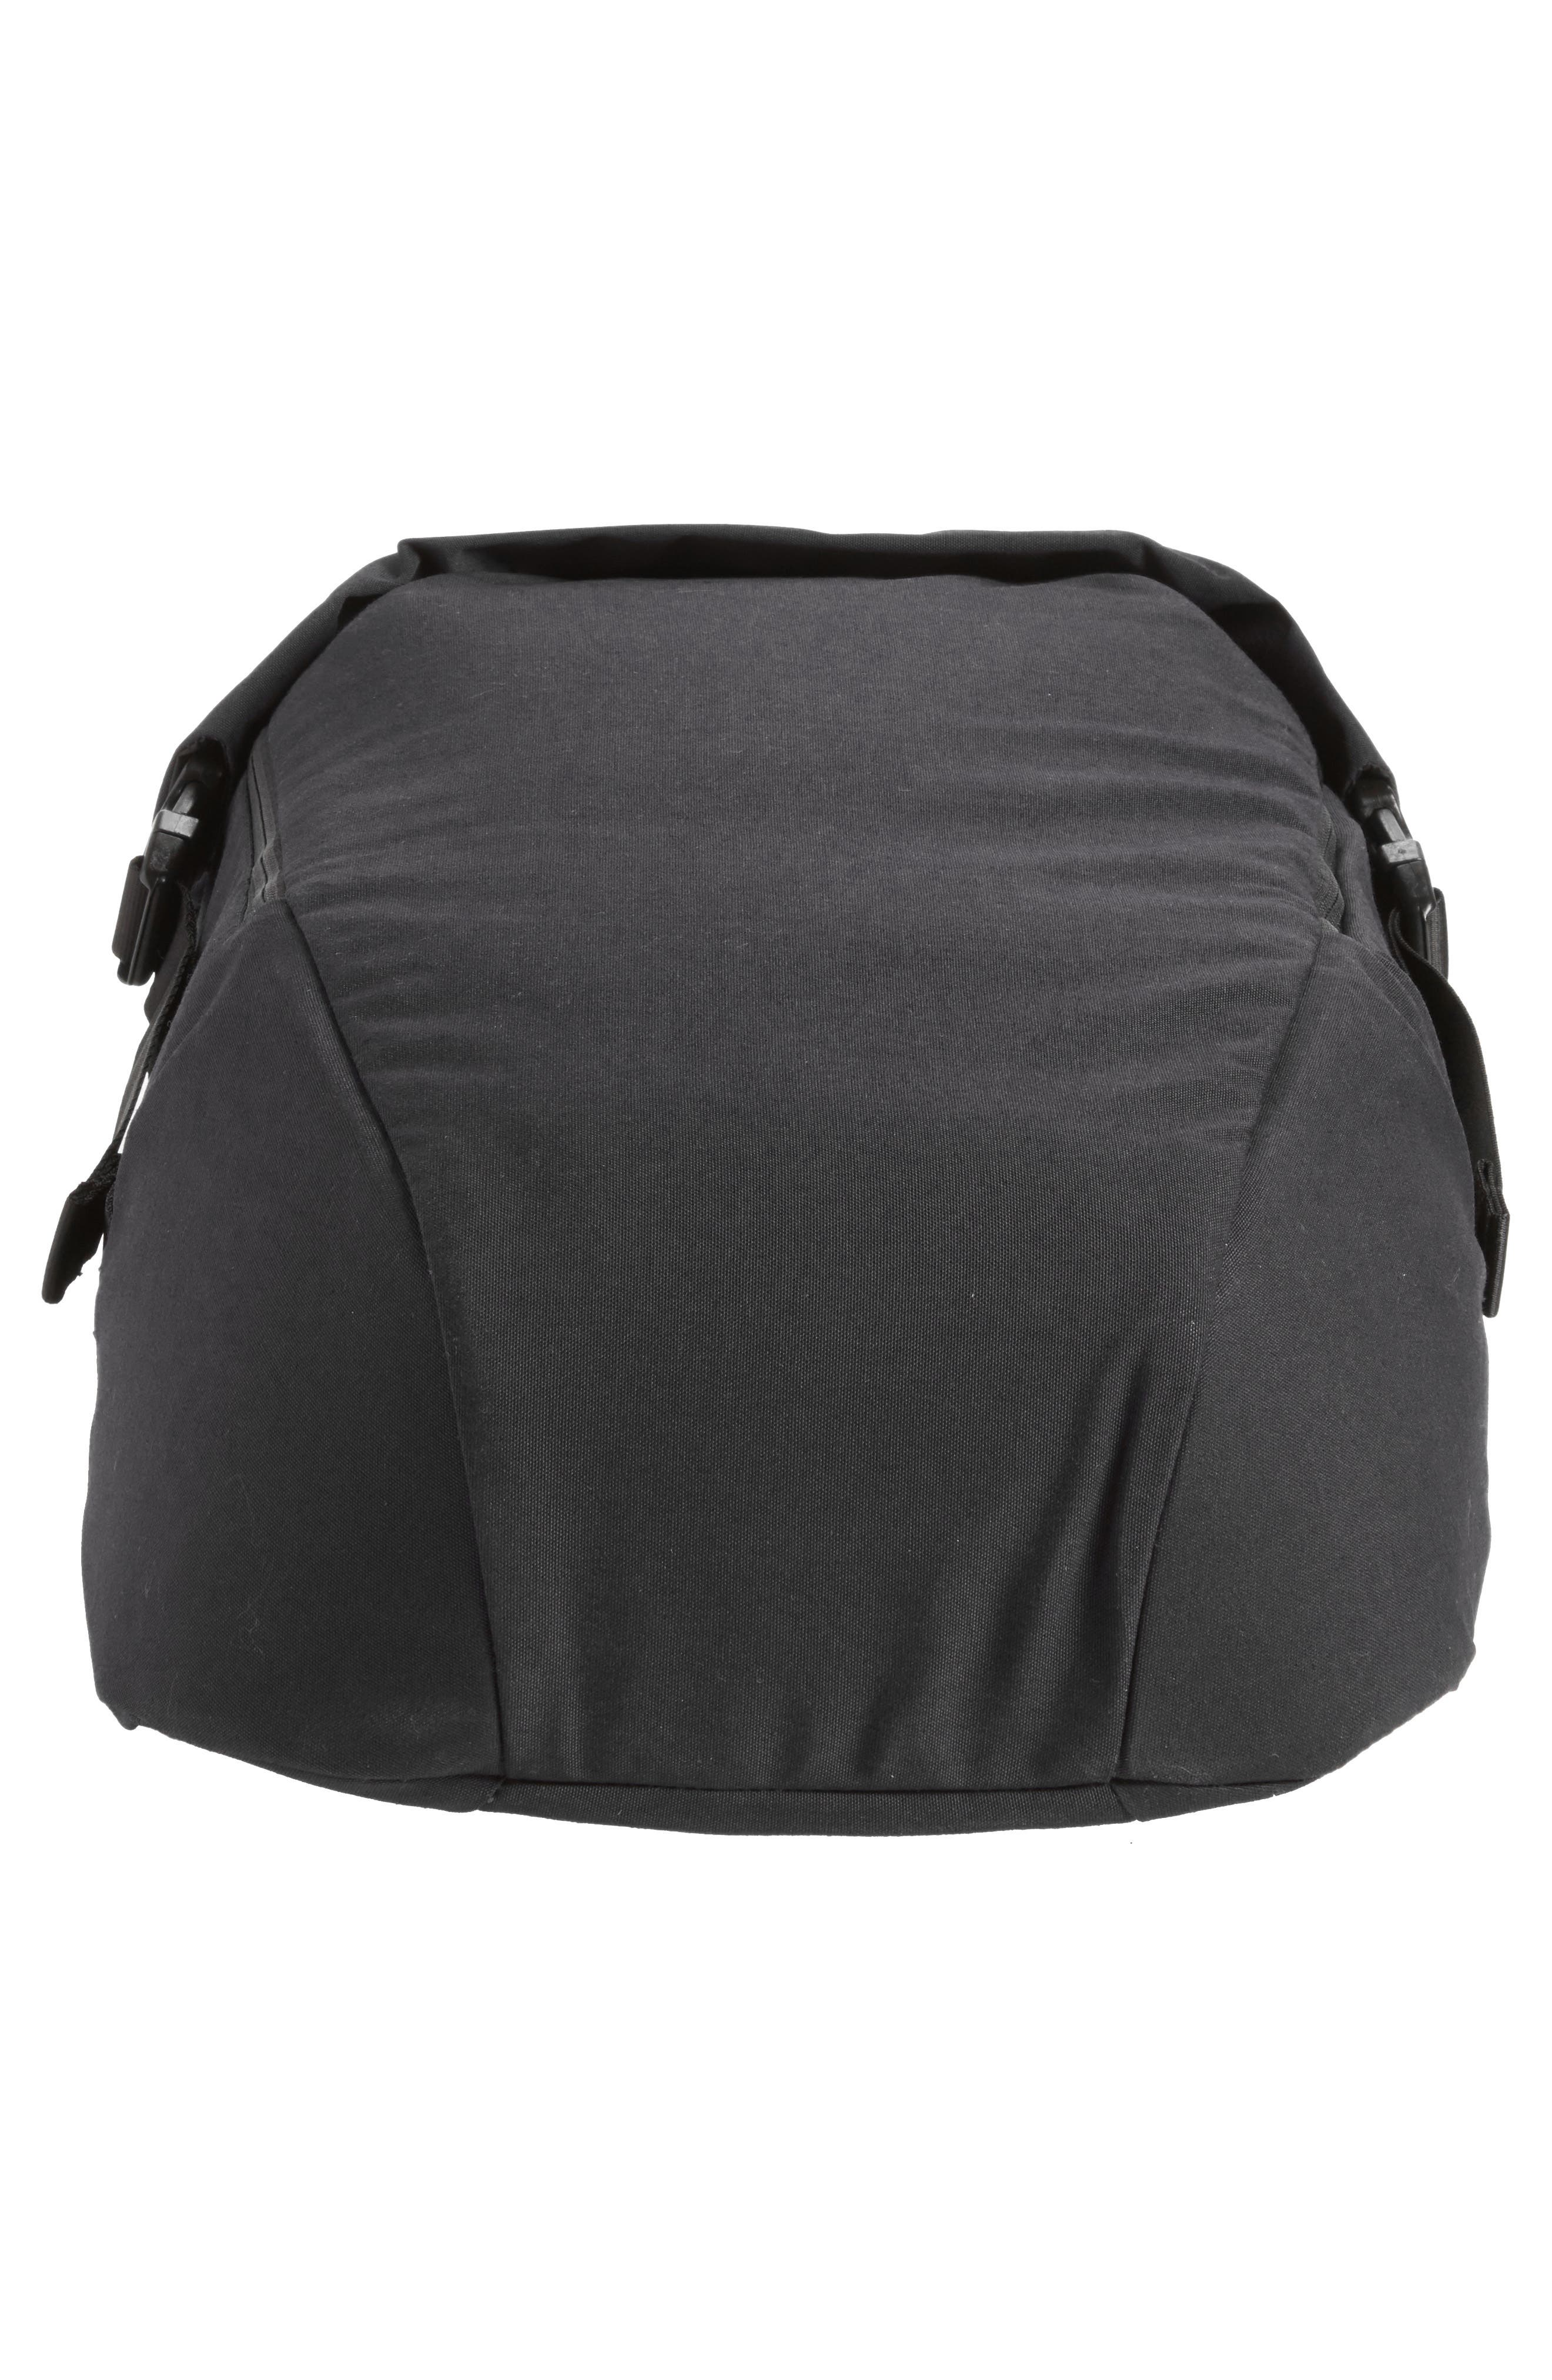 Quick Pack Lux Backpack,                             Alternate thumbnail 6, color,                             Black